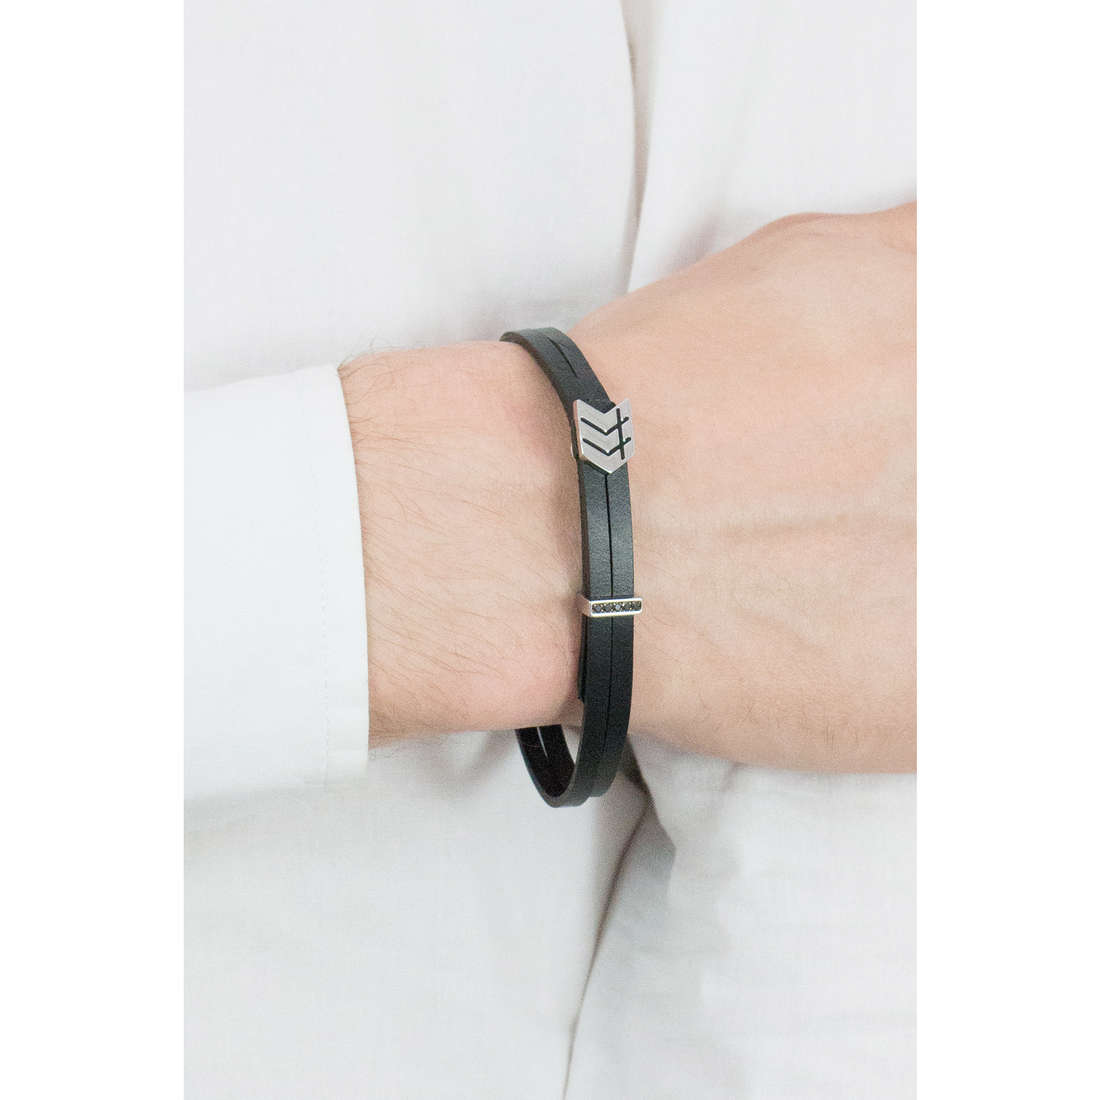 Nomination bracelets Metropolitan homme 026704/008 photo wearing